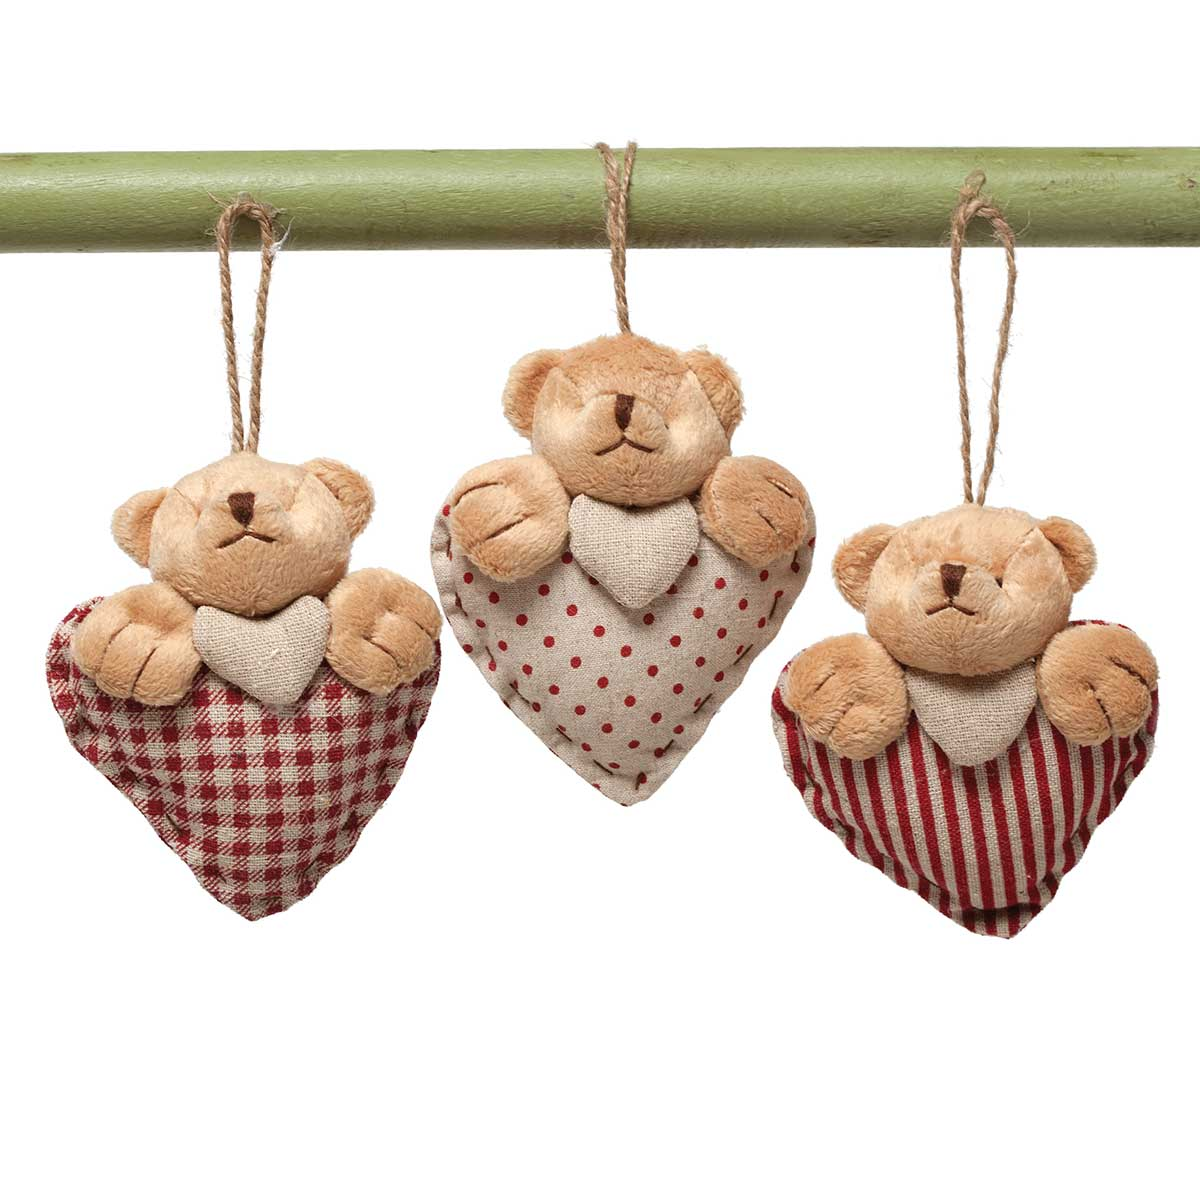 "COZY BEAR HEART ORNAMENT 4.5"" 3 ASSORTED v22"